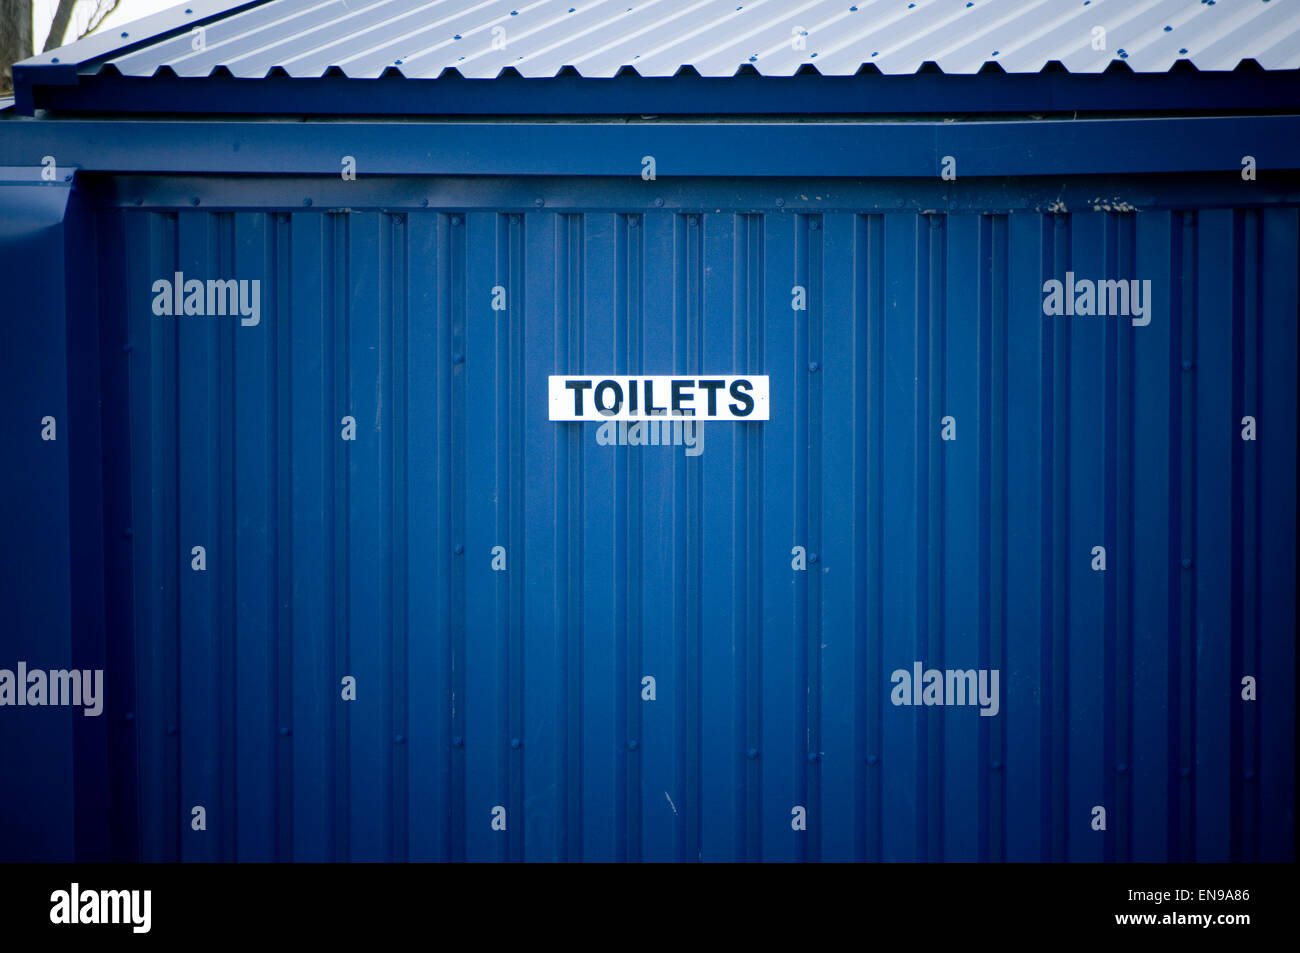 toilet block toilets loo loos camping site sites camp campsite campsites block blocks communal tent tents Stock Photo